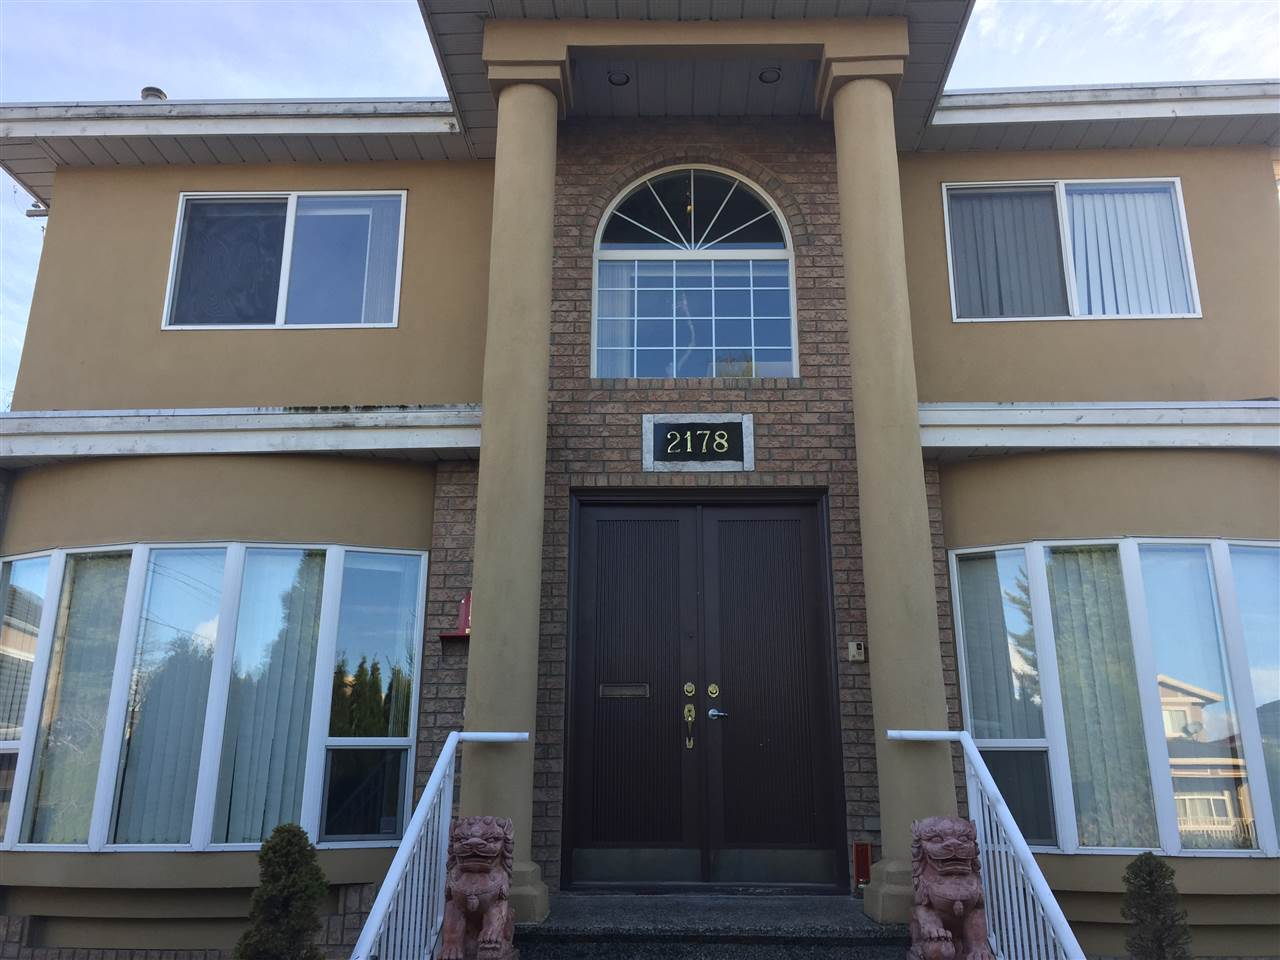 Main Photo: 2178 E 49TH Avenue in Vancouver: Killarney VE House for sale (Vancouver East)  : MLS® # R2219096